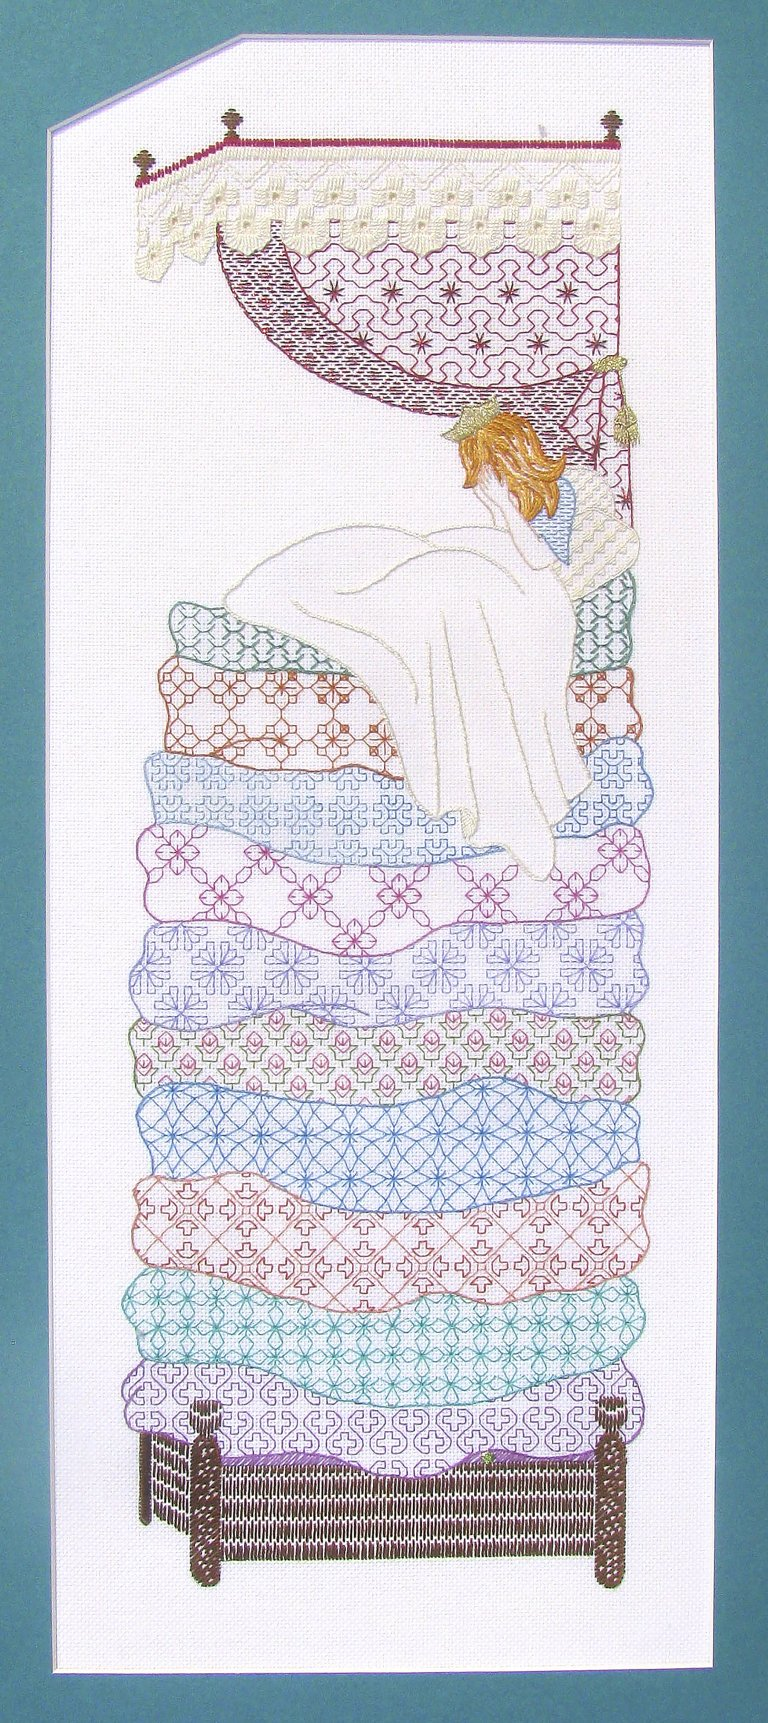 The Princess and the Pea by Marion Scoular